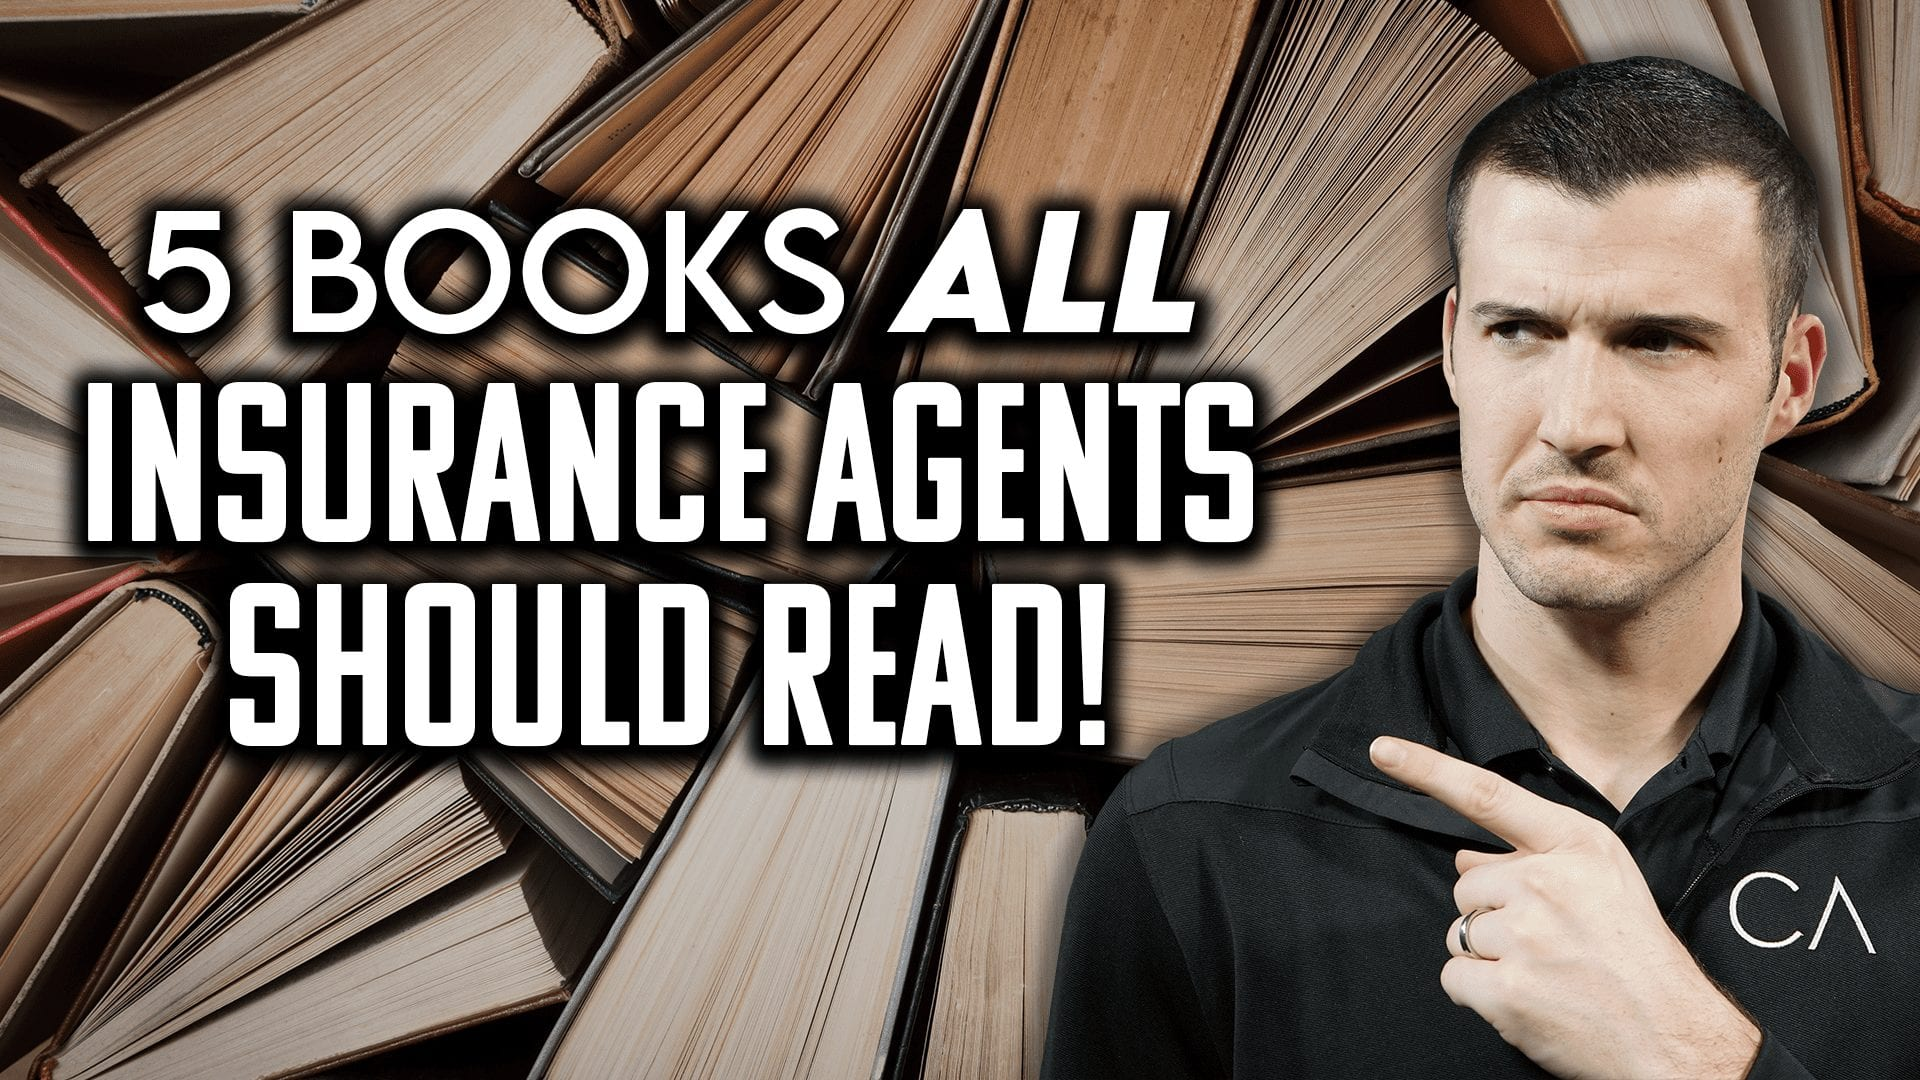 an image with text that says 5 books all insurance agents should and a picture of cody askins.